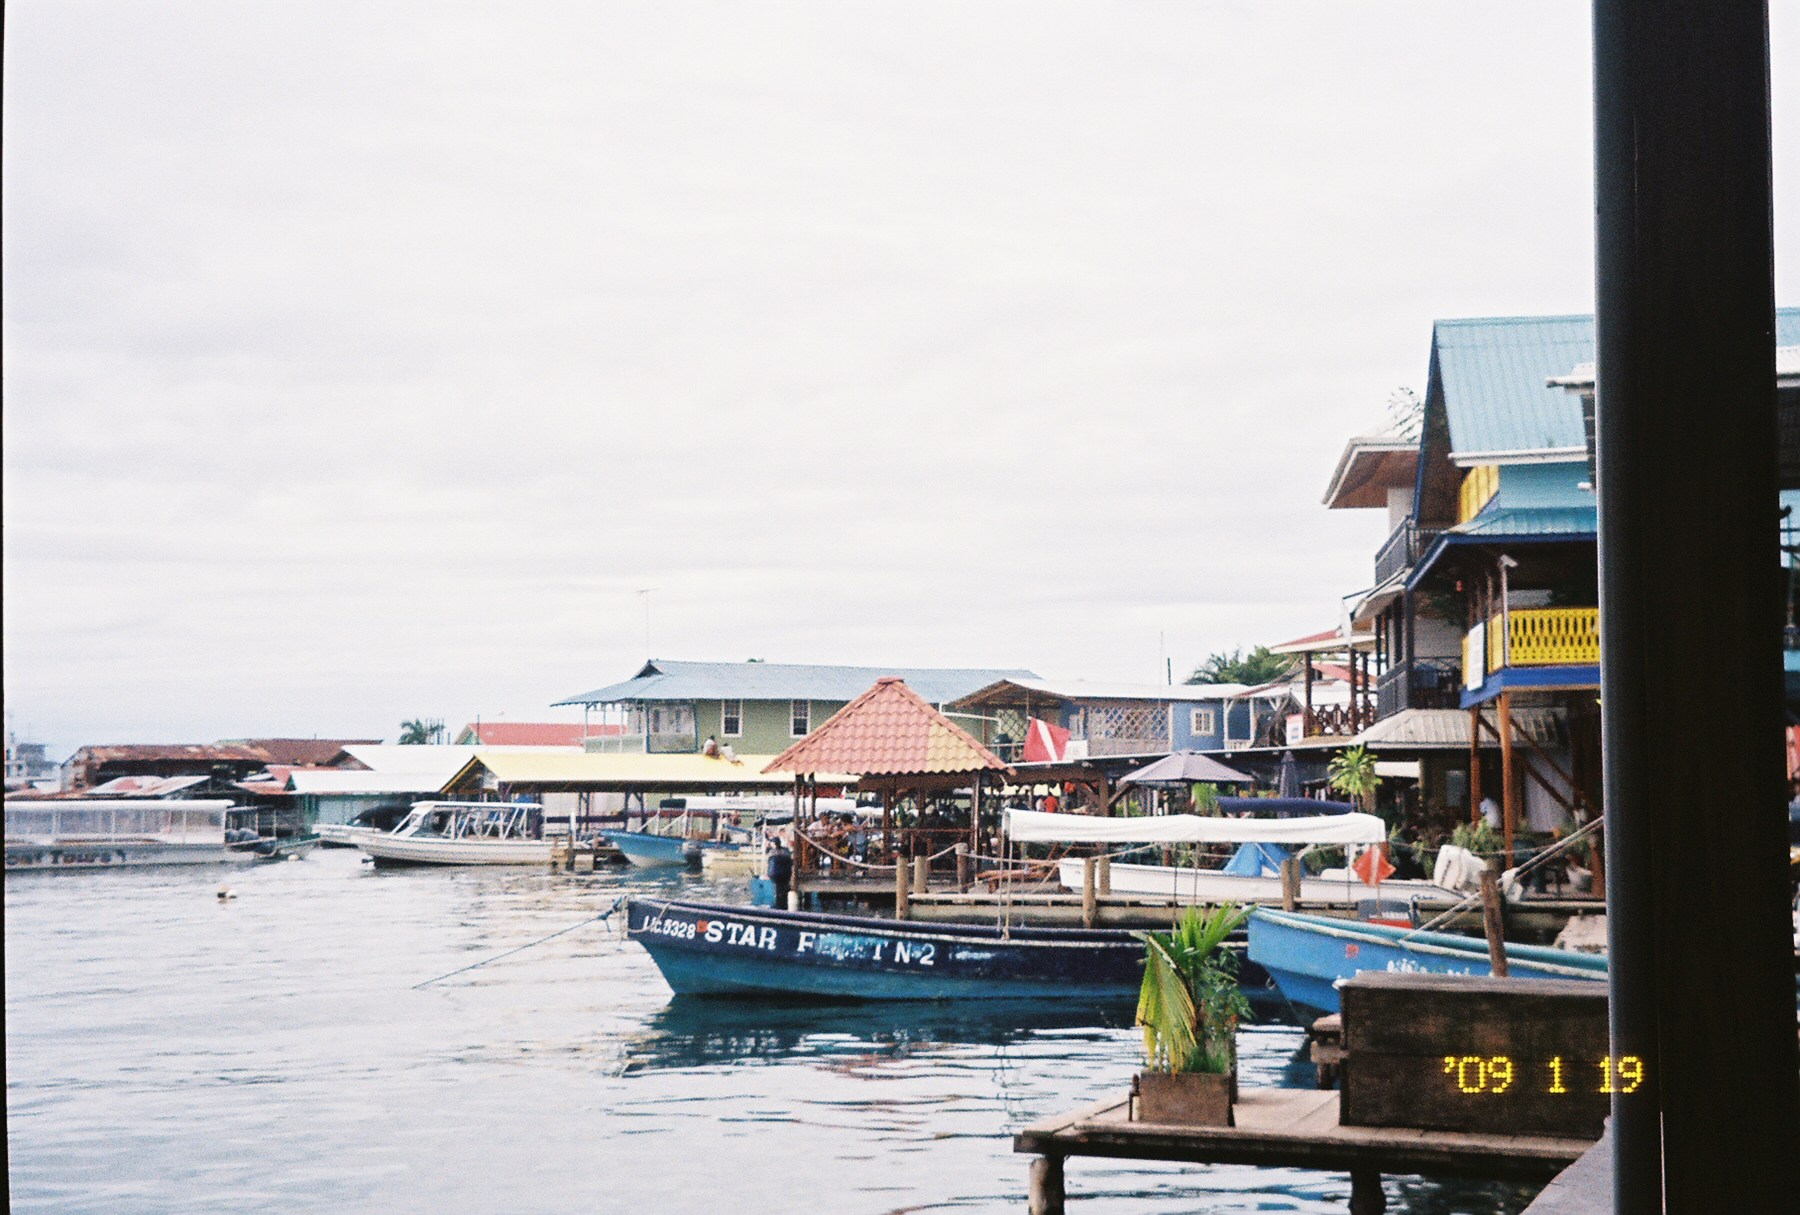 Day trips on boats to Bastimientos, Red Frog Beach,and Isla Popa are favorite tourist attractions in Bocas Del Toro